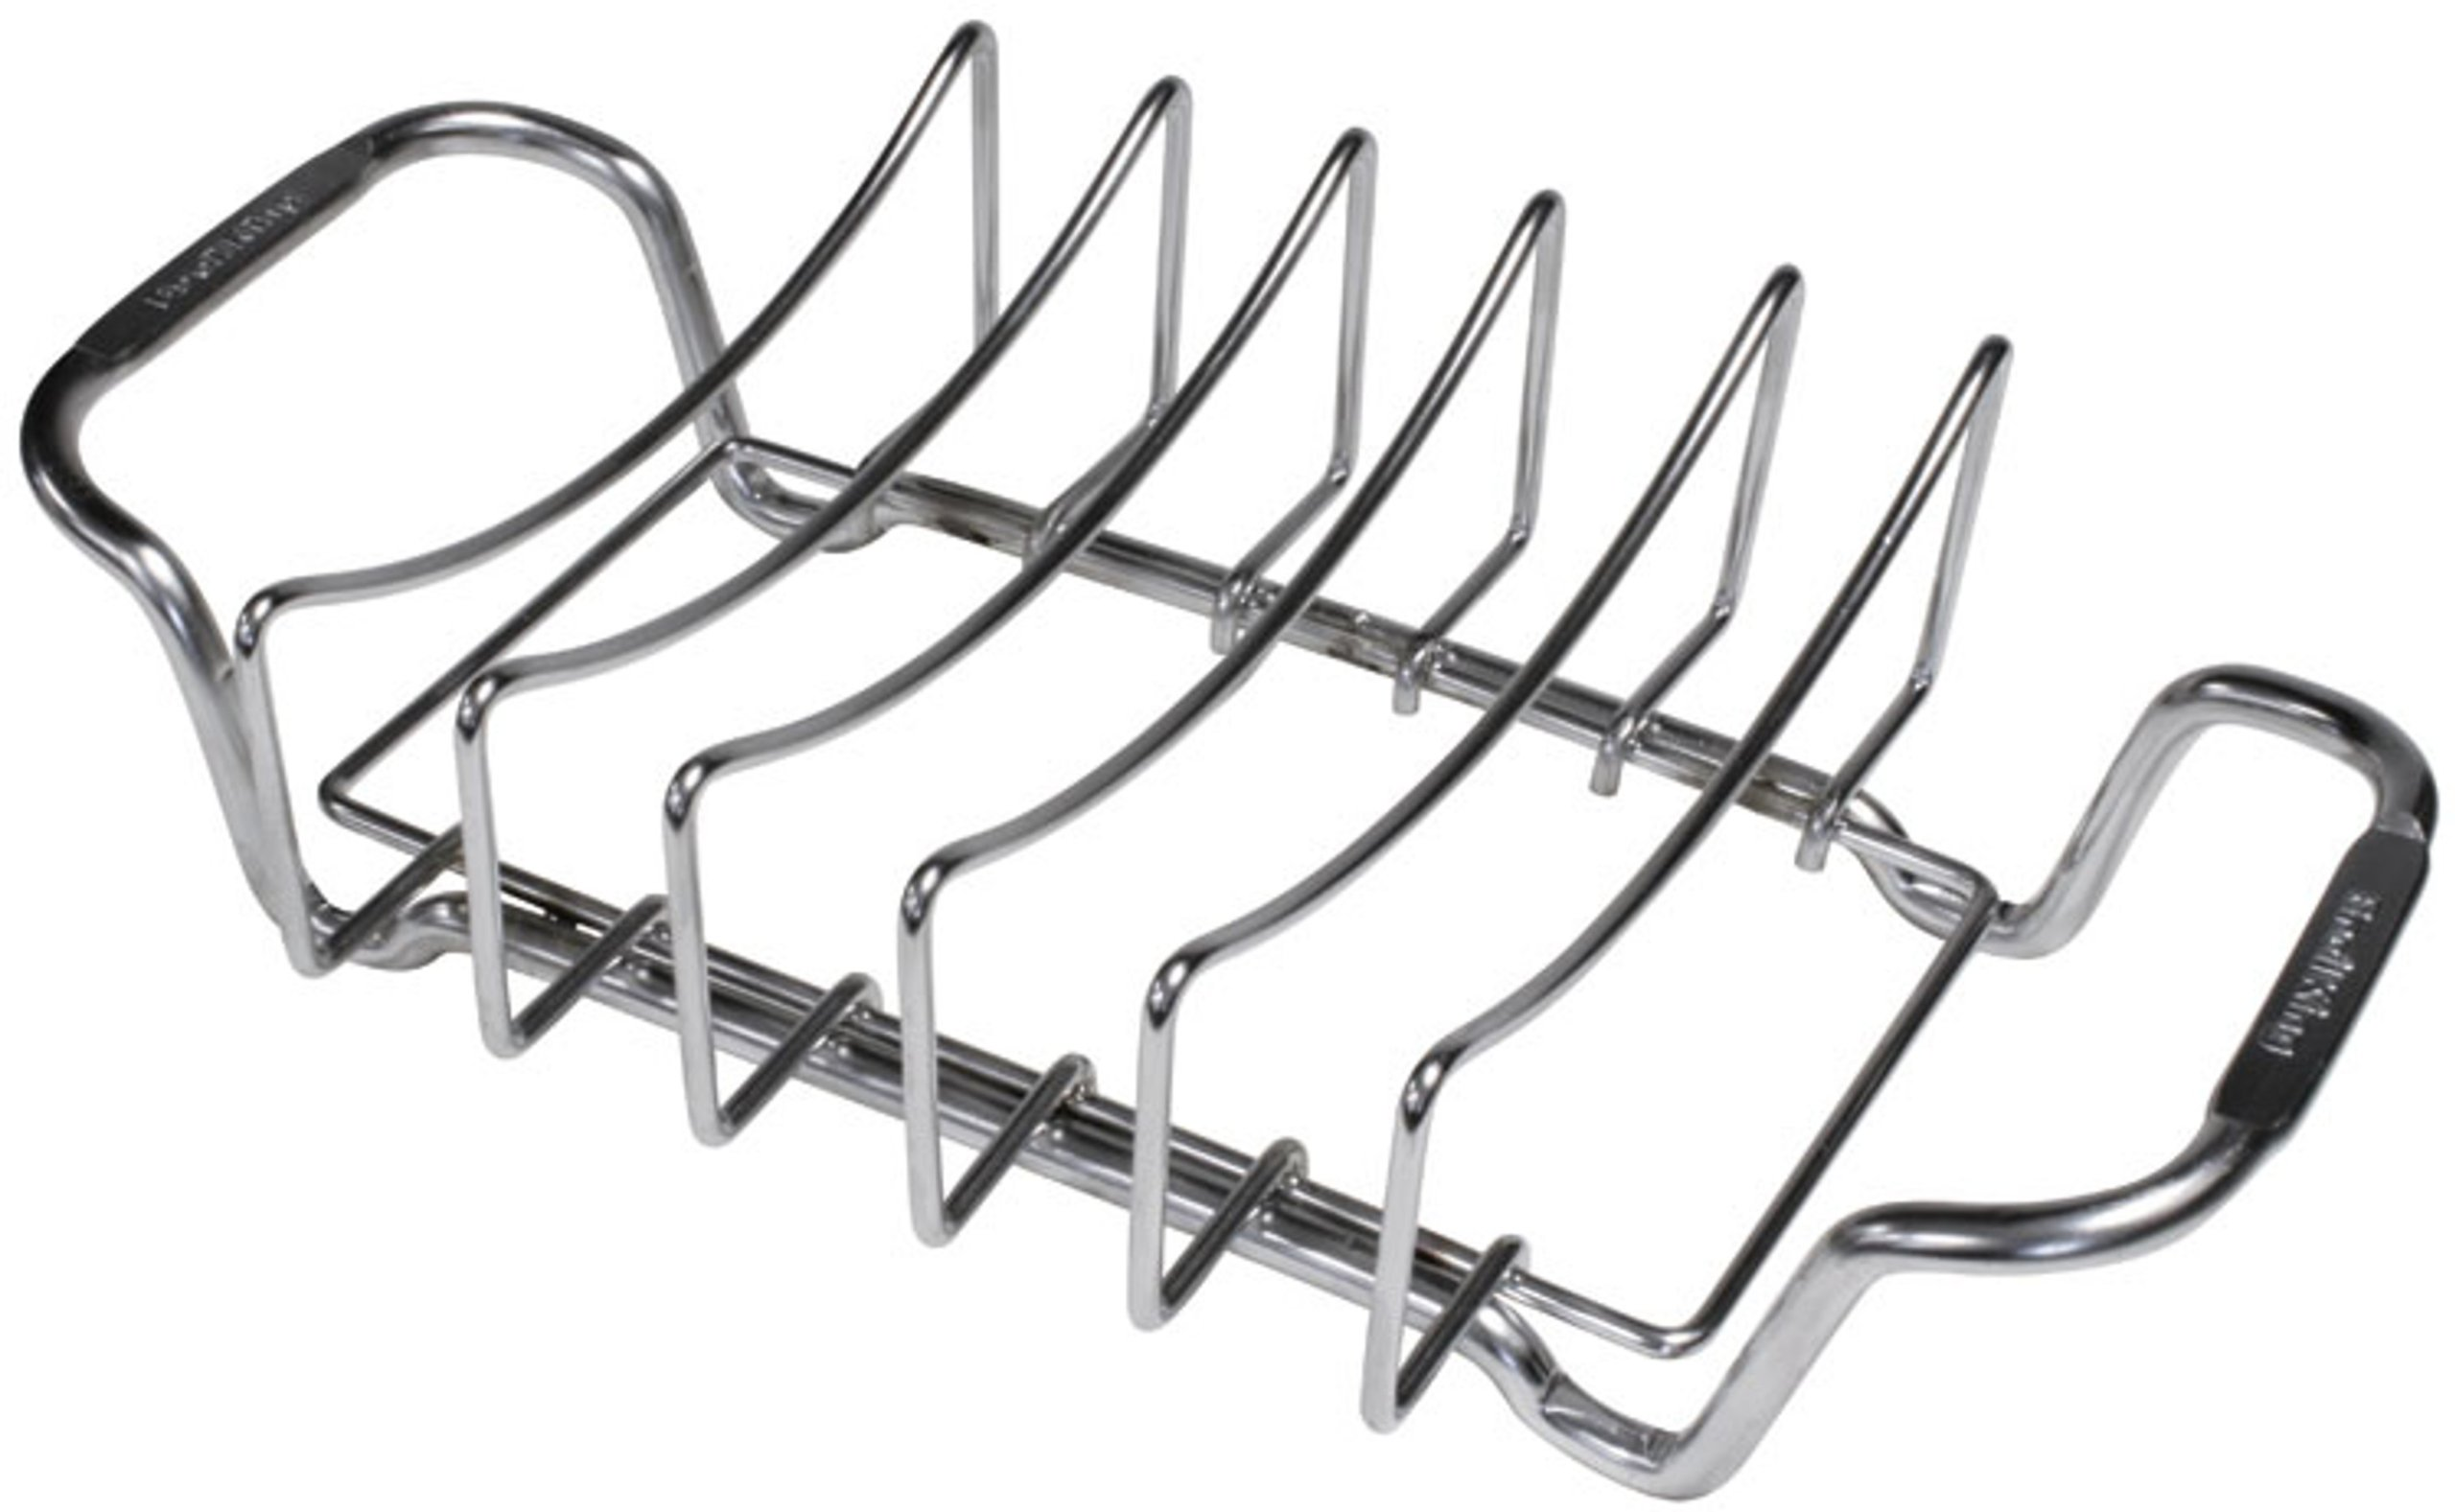 Broil King 62602 Rib Rack and Roast Support by Broil King